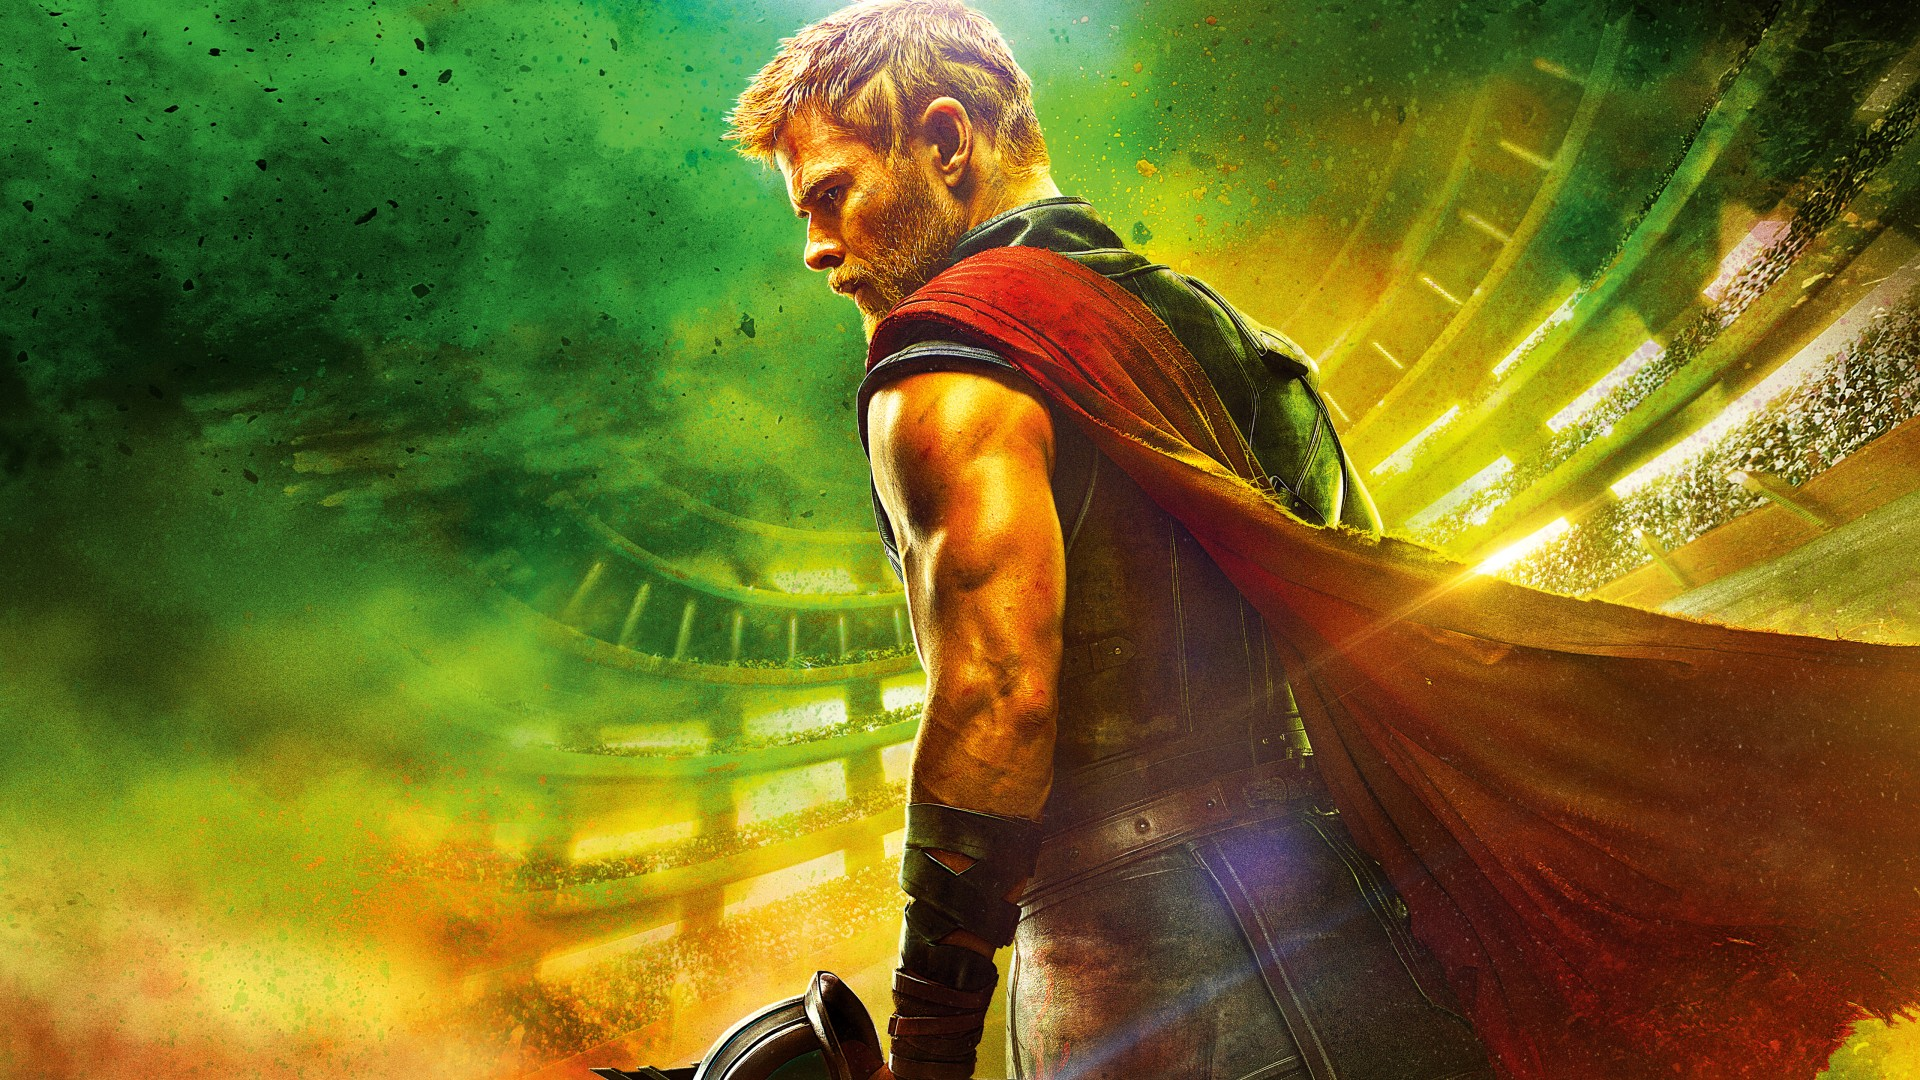 Listen to THOR Epic Trailer Music